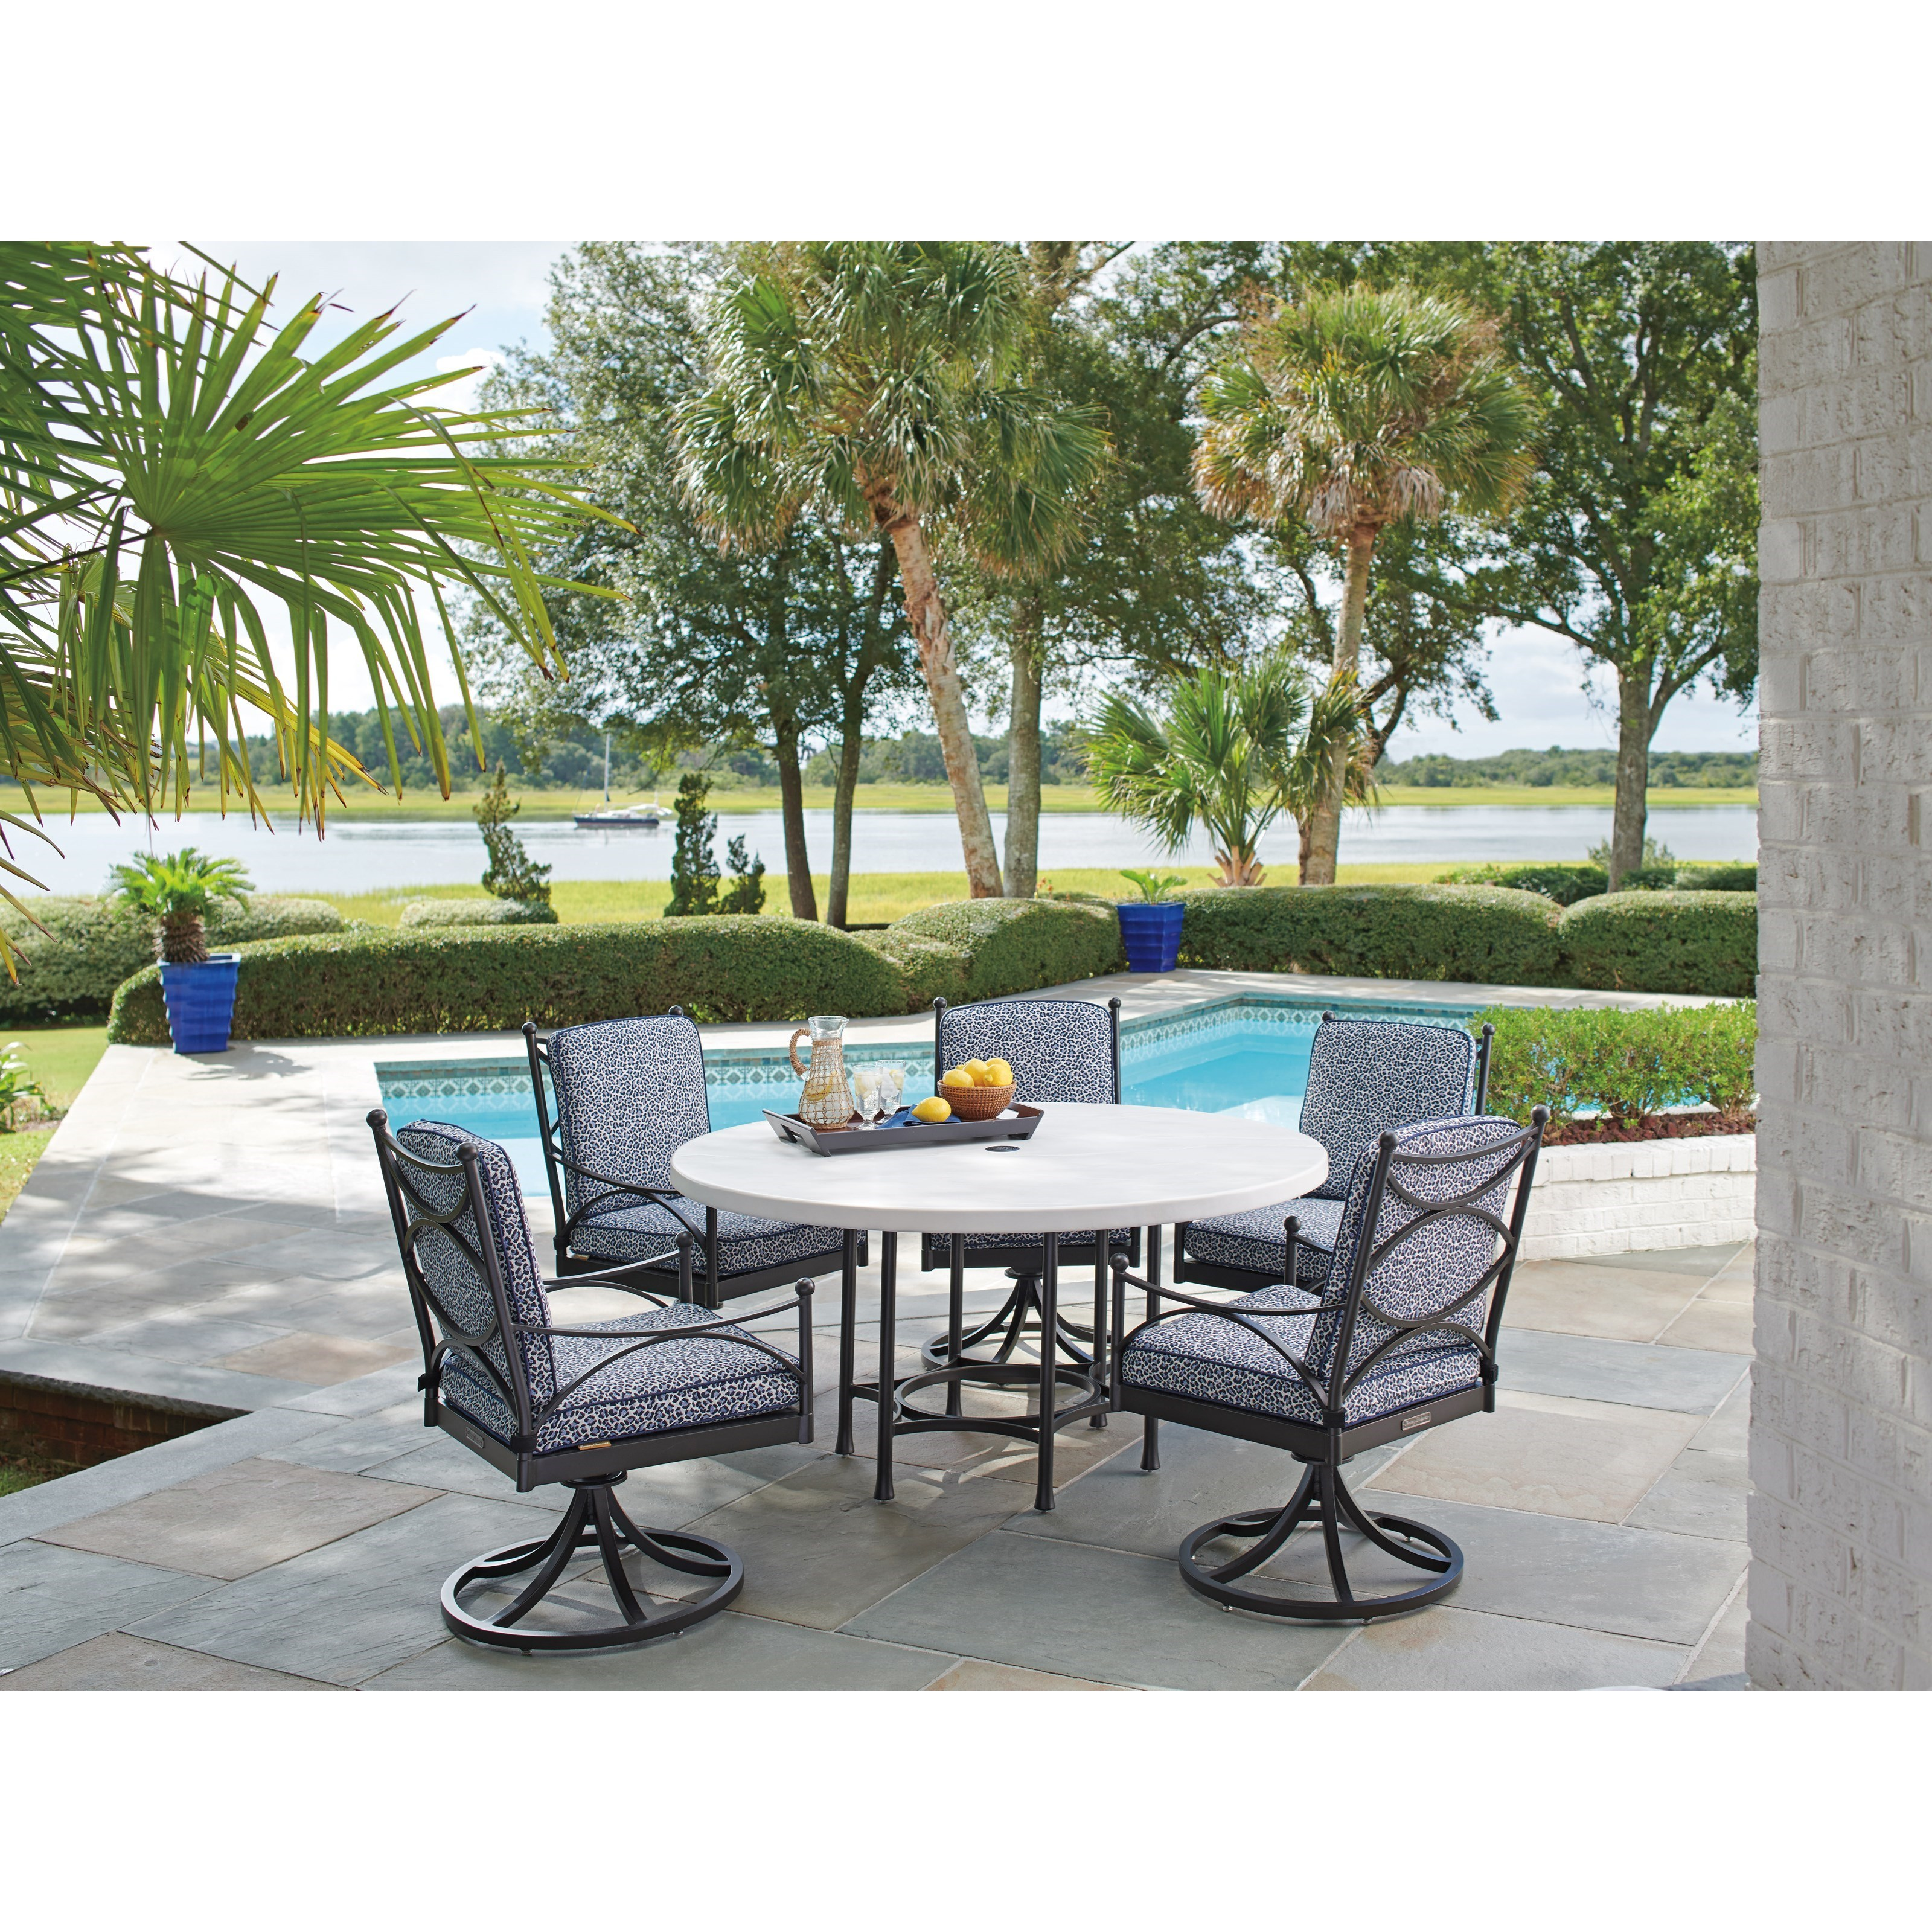 Pavlova 6 Piece Outdoor Table and Chair Set by Tommy Bahama Outdoor Living at Jacksonville Furniture Mart